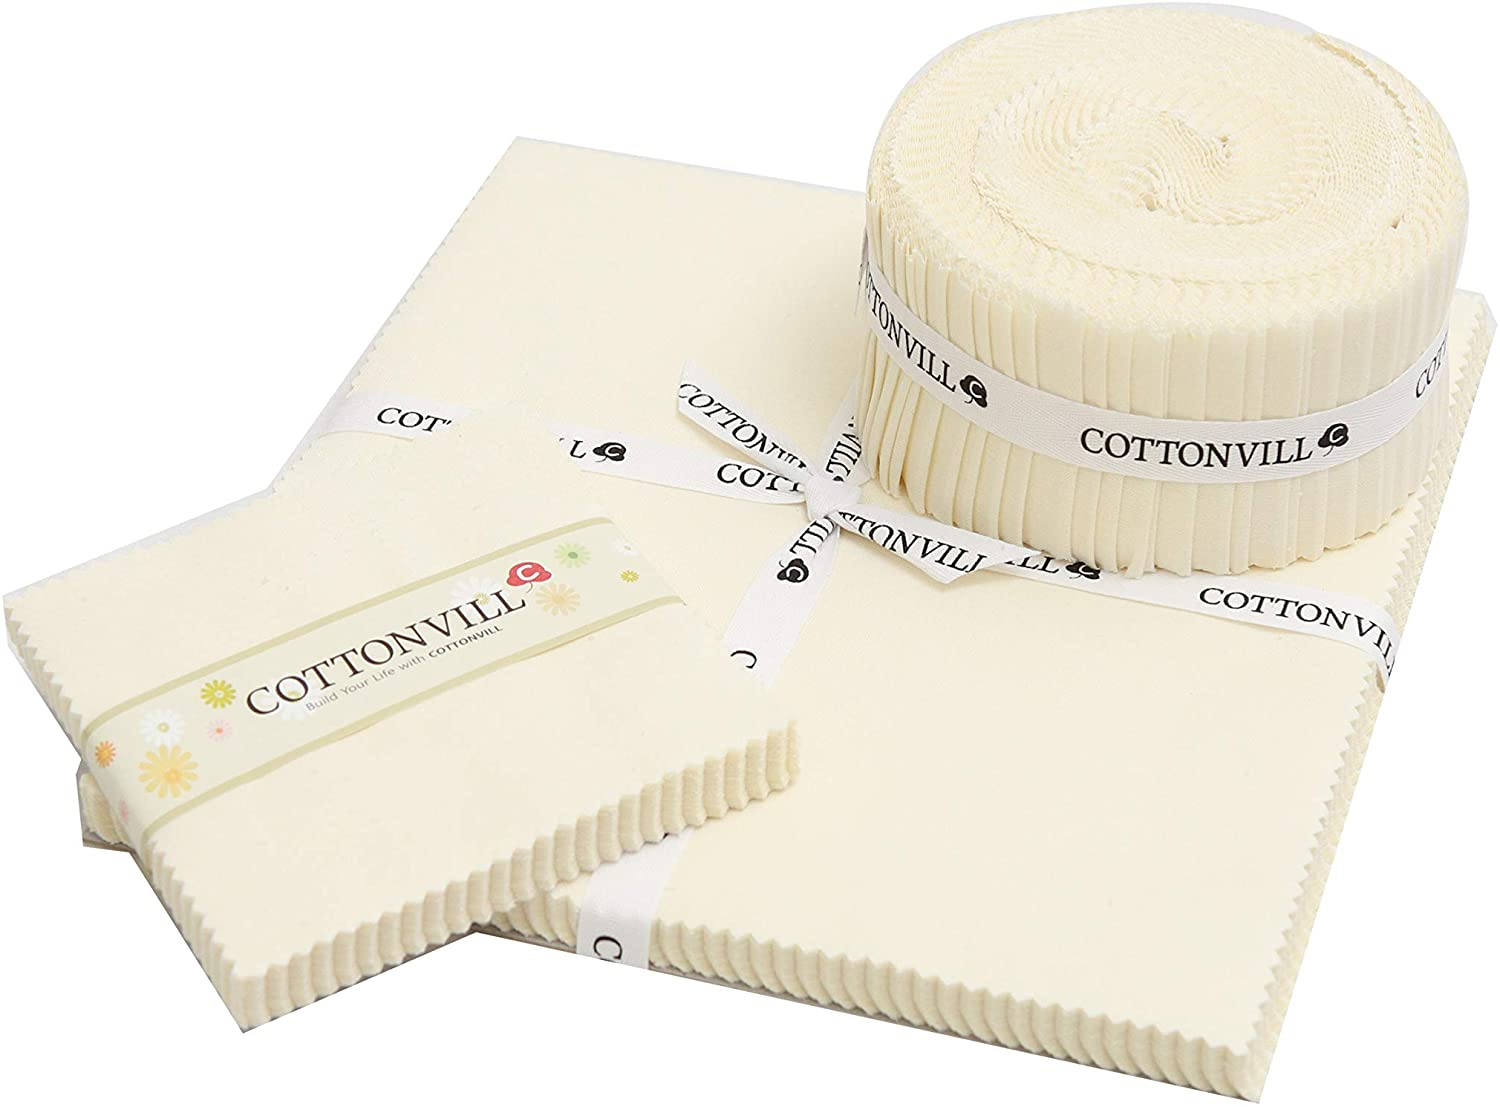 COTTONVILL 20COUNT Cotton Solid Quilting Fabric (5inch Square, 03-Whisper White)